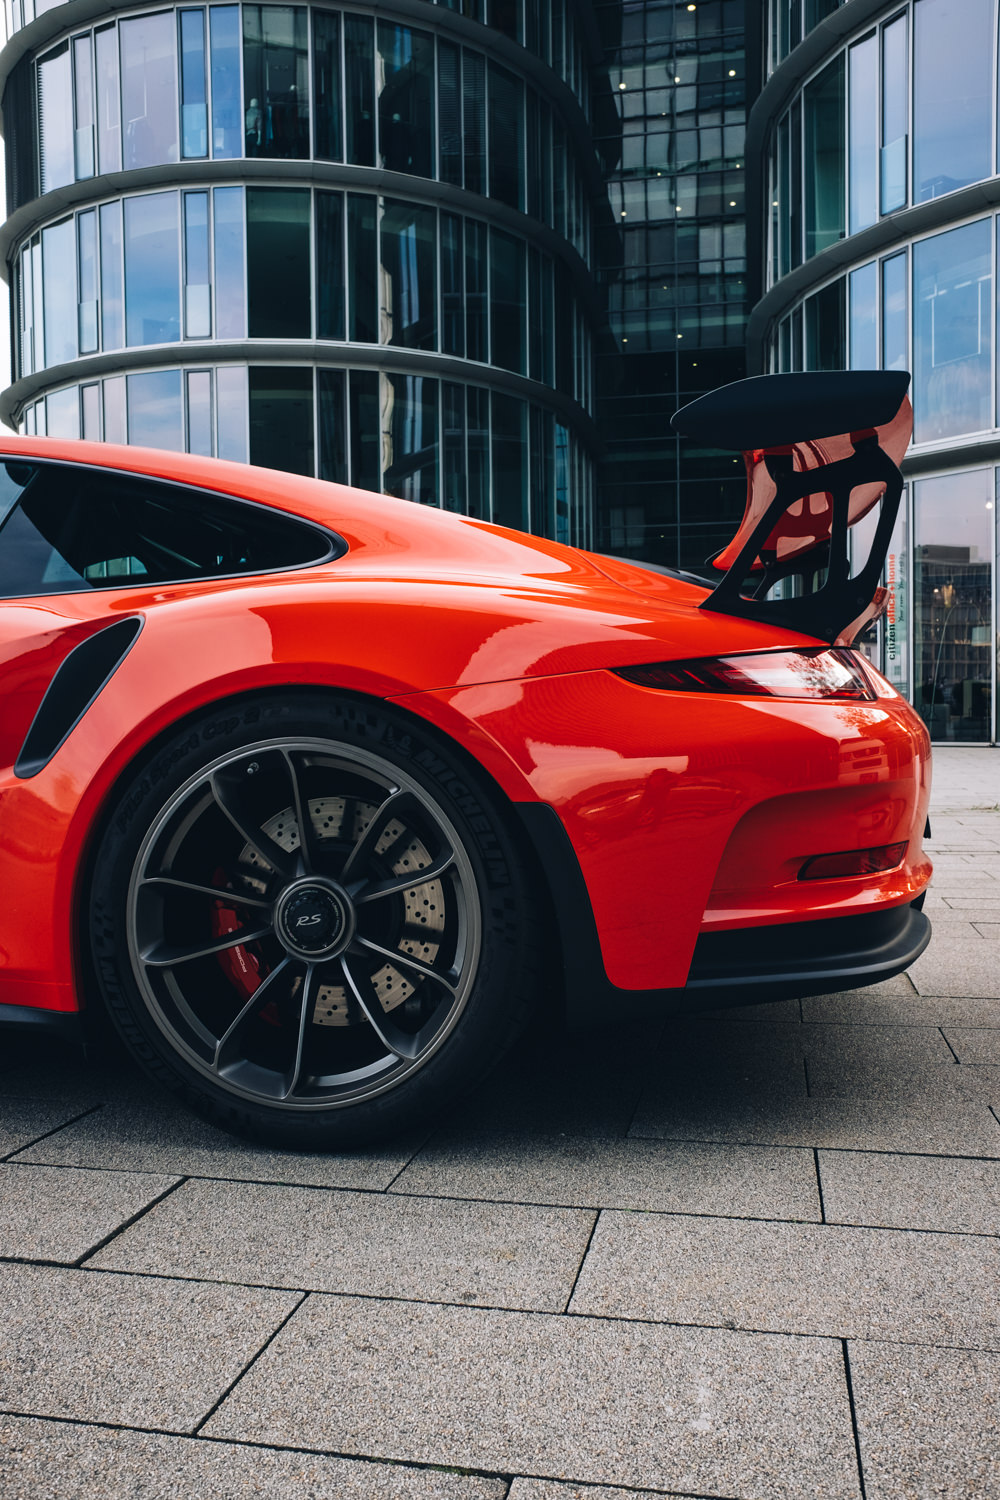 porsche red sportscar street city urban architecture vehicle road exhibition business